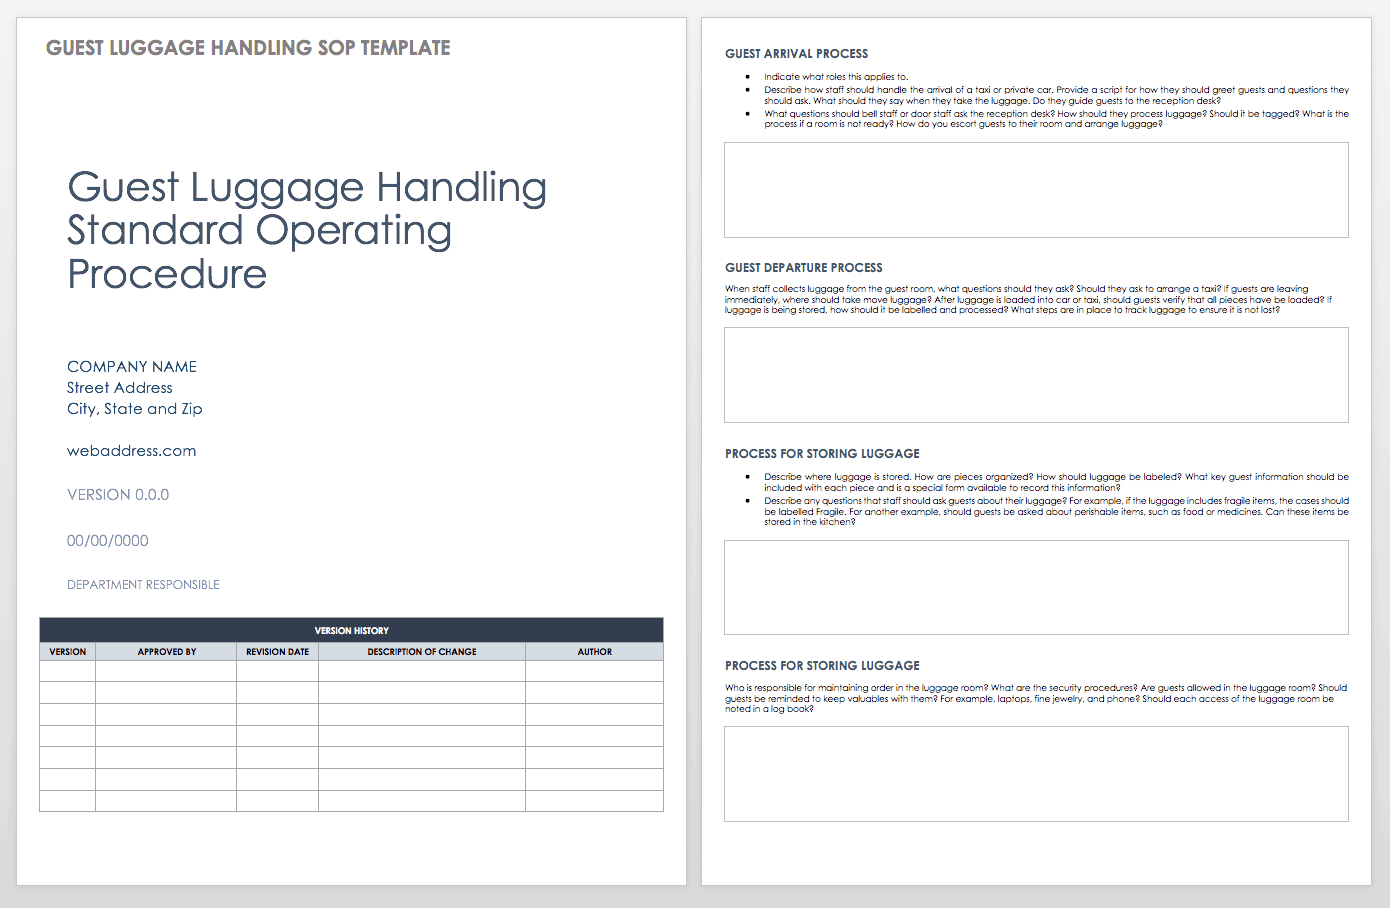 Guest Luggage Standard Operating Procedure Template